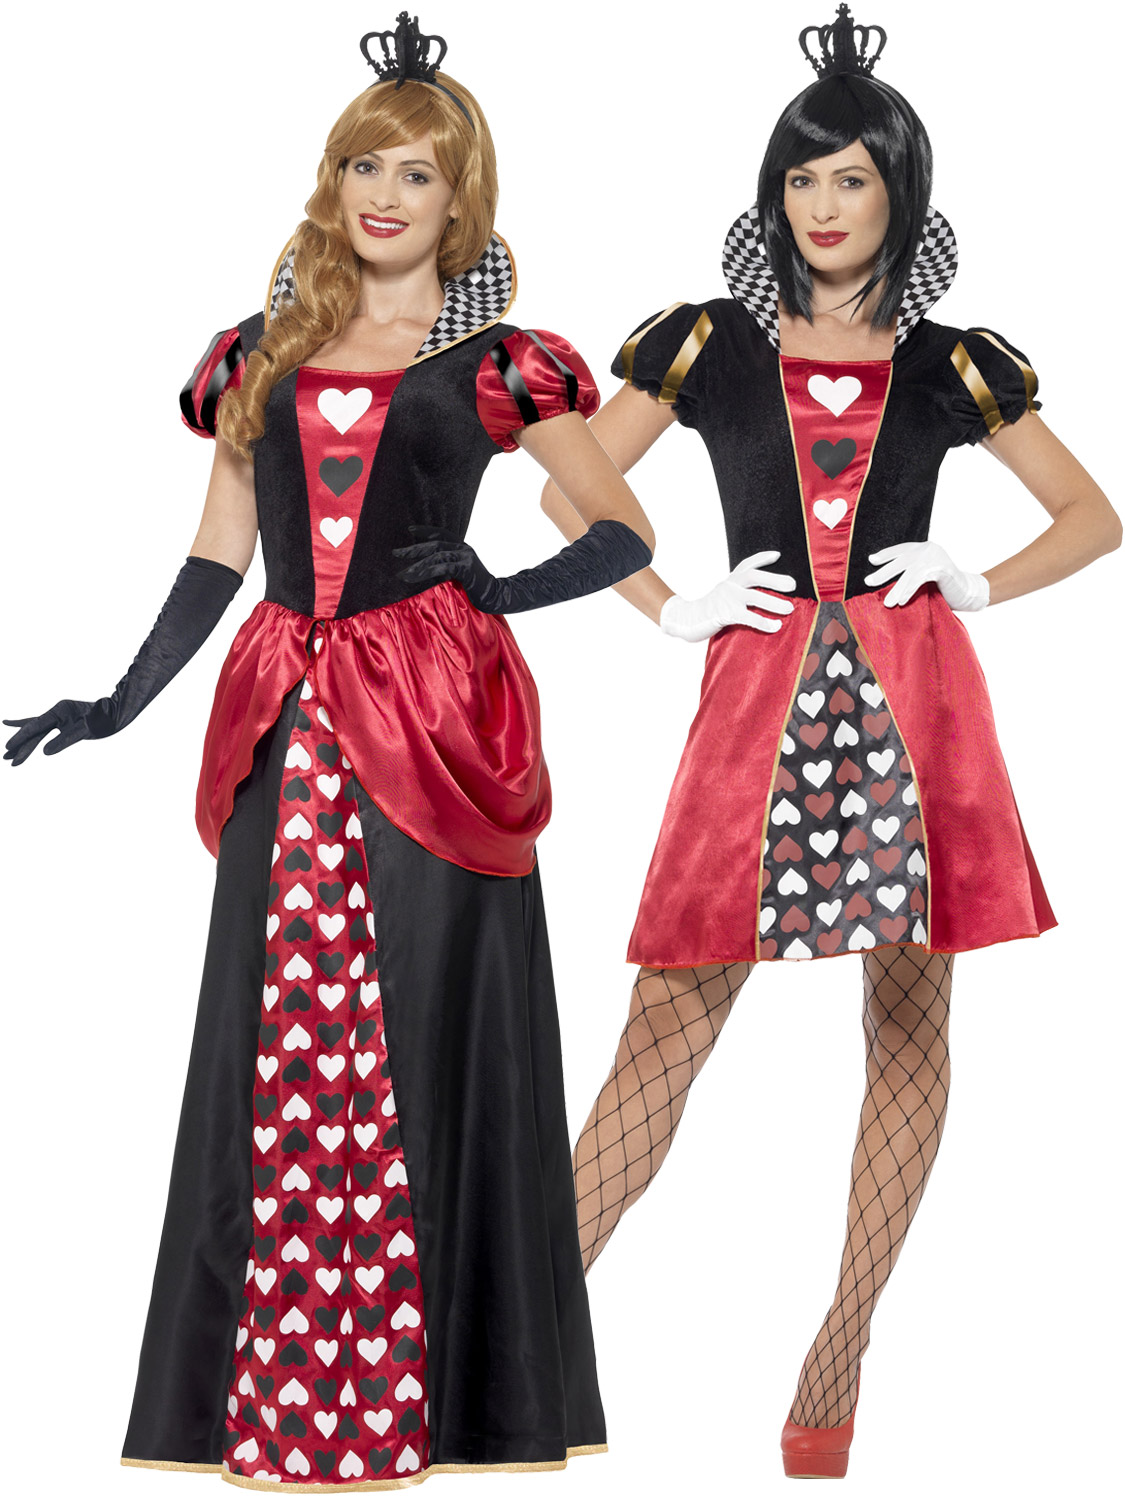 Ladies queen of hearts costume adult wonderland fancy dress outfit transform yourself into the queen of hearts from the well known book and film alice in wonderland solutioingenieria Images